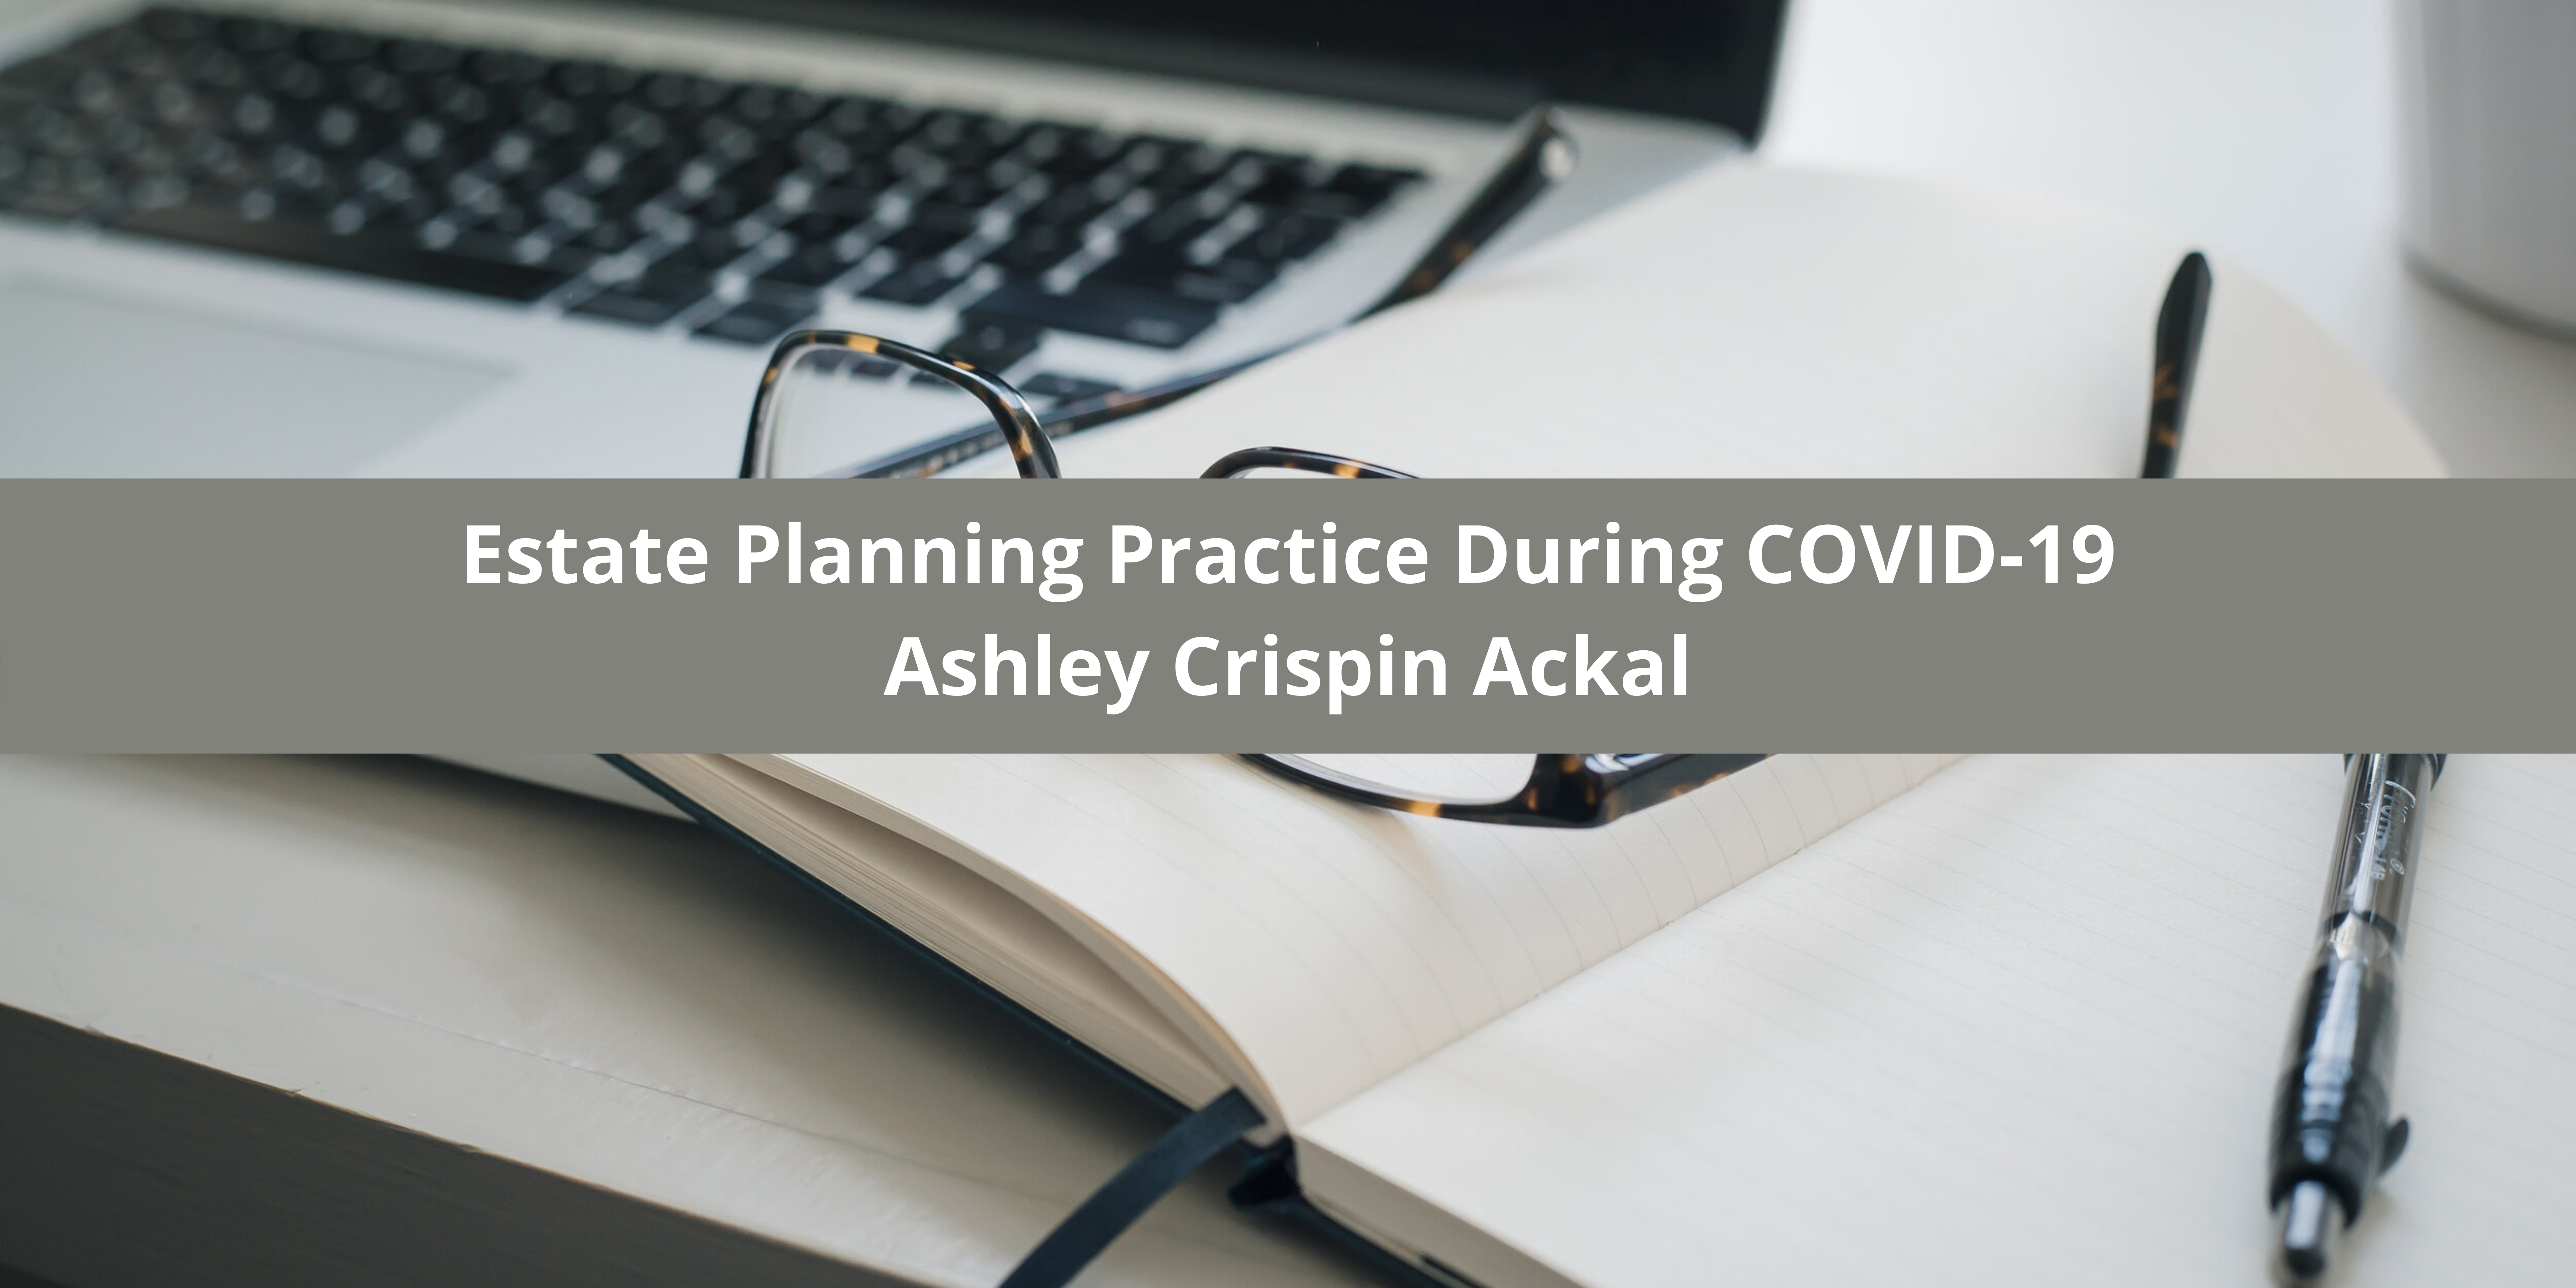 Ashley Crispin Ackal Trust Litigation Lawyer of West Palm Beach Explains How She Continues Her Estate Planning Practice During COVID-19